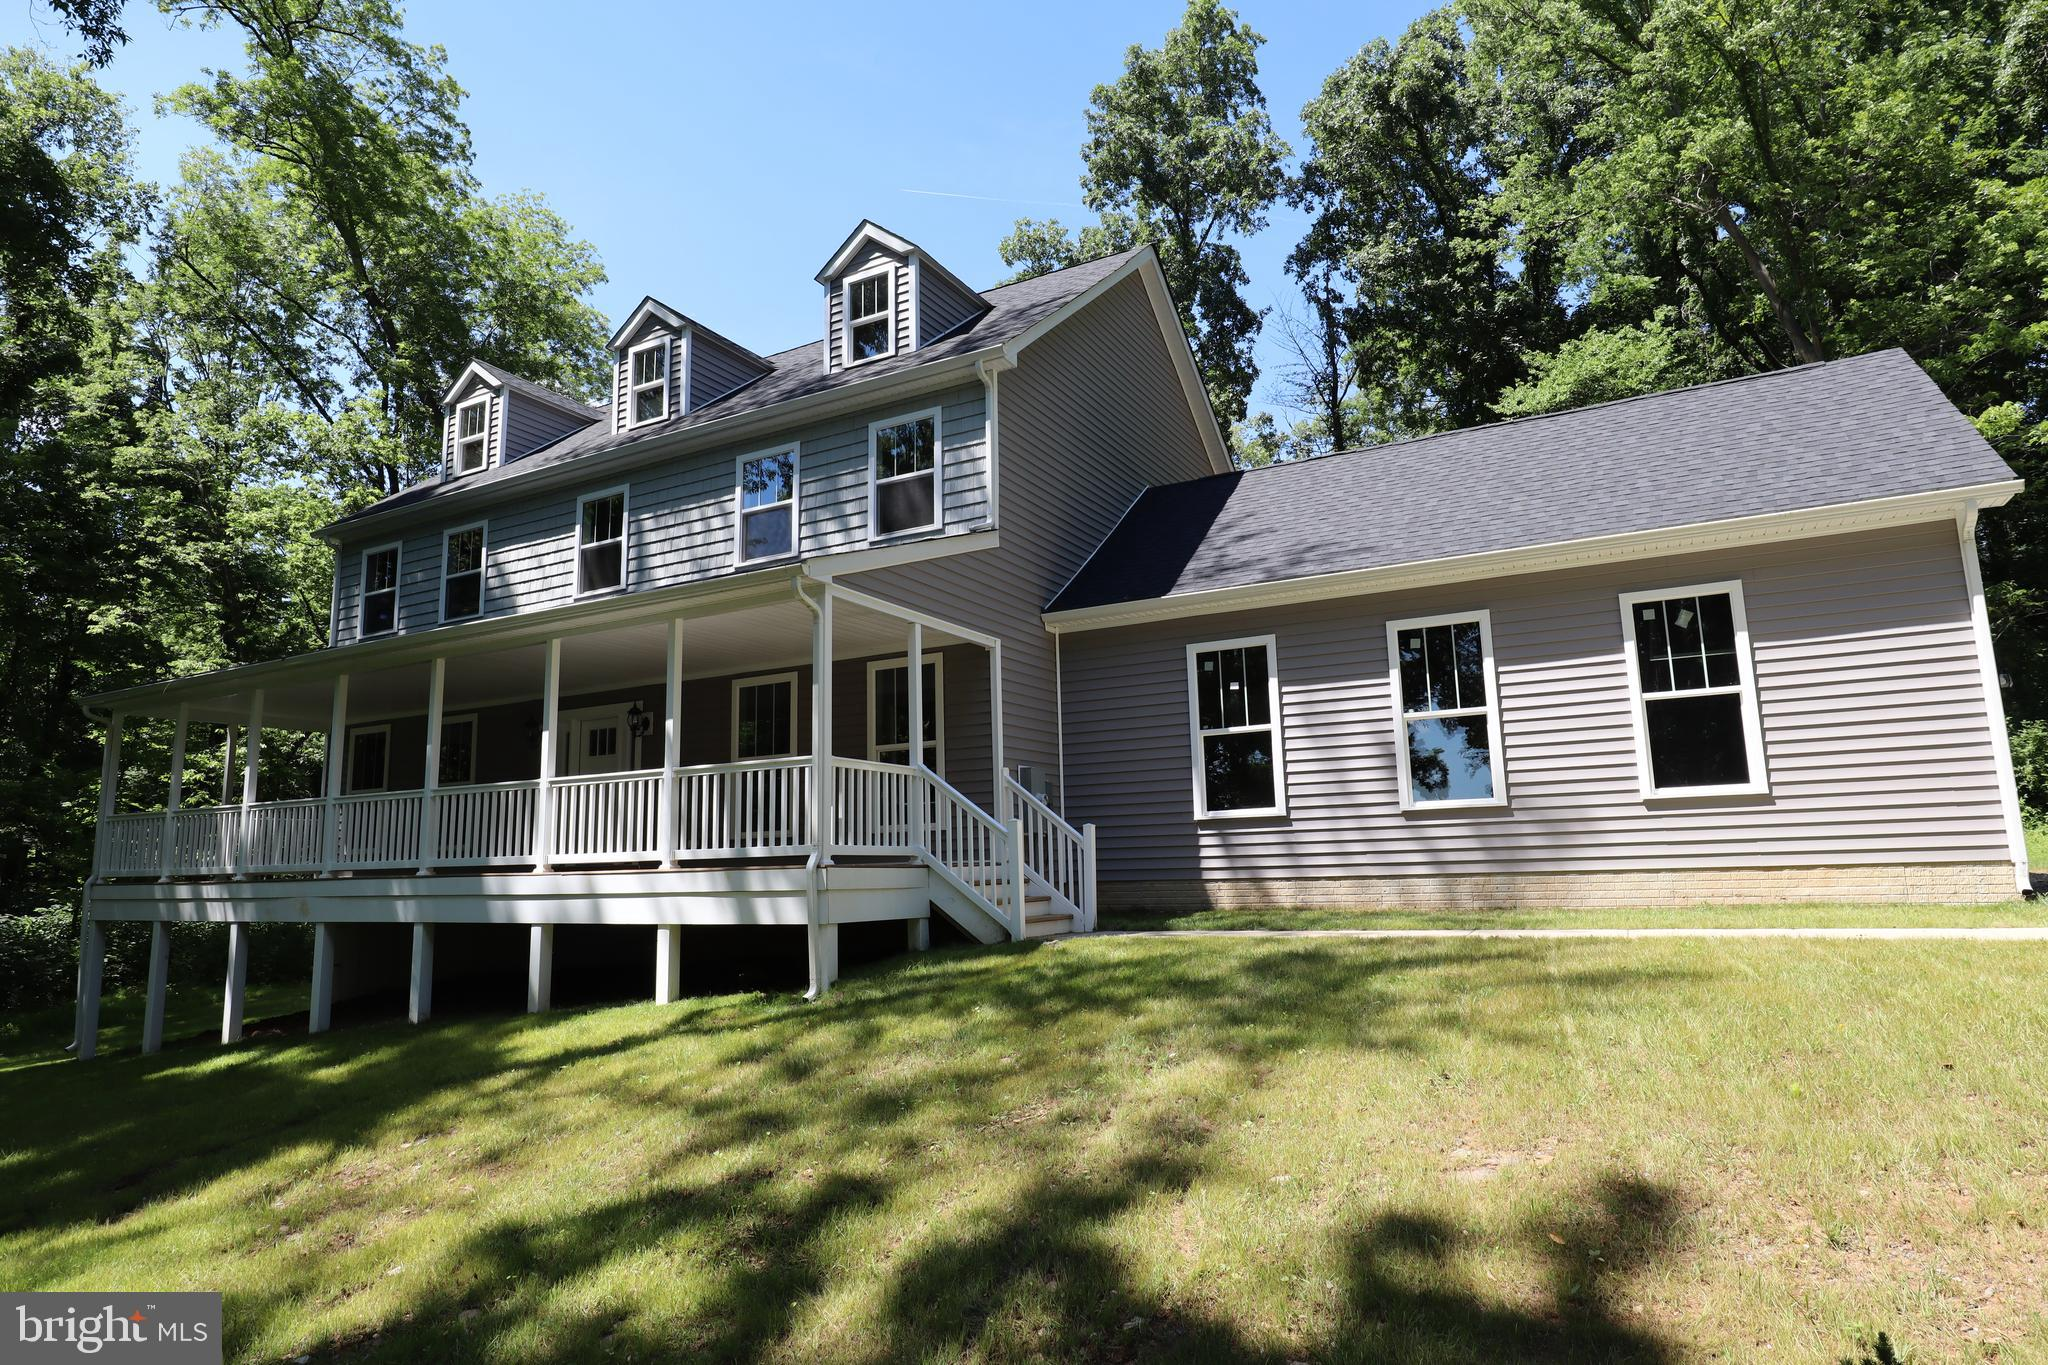 Beautiful two story colonial on 3.66 acres with mountain views. Hardwood Floors, Stainless Steel app